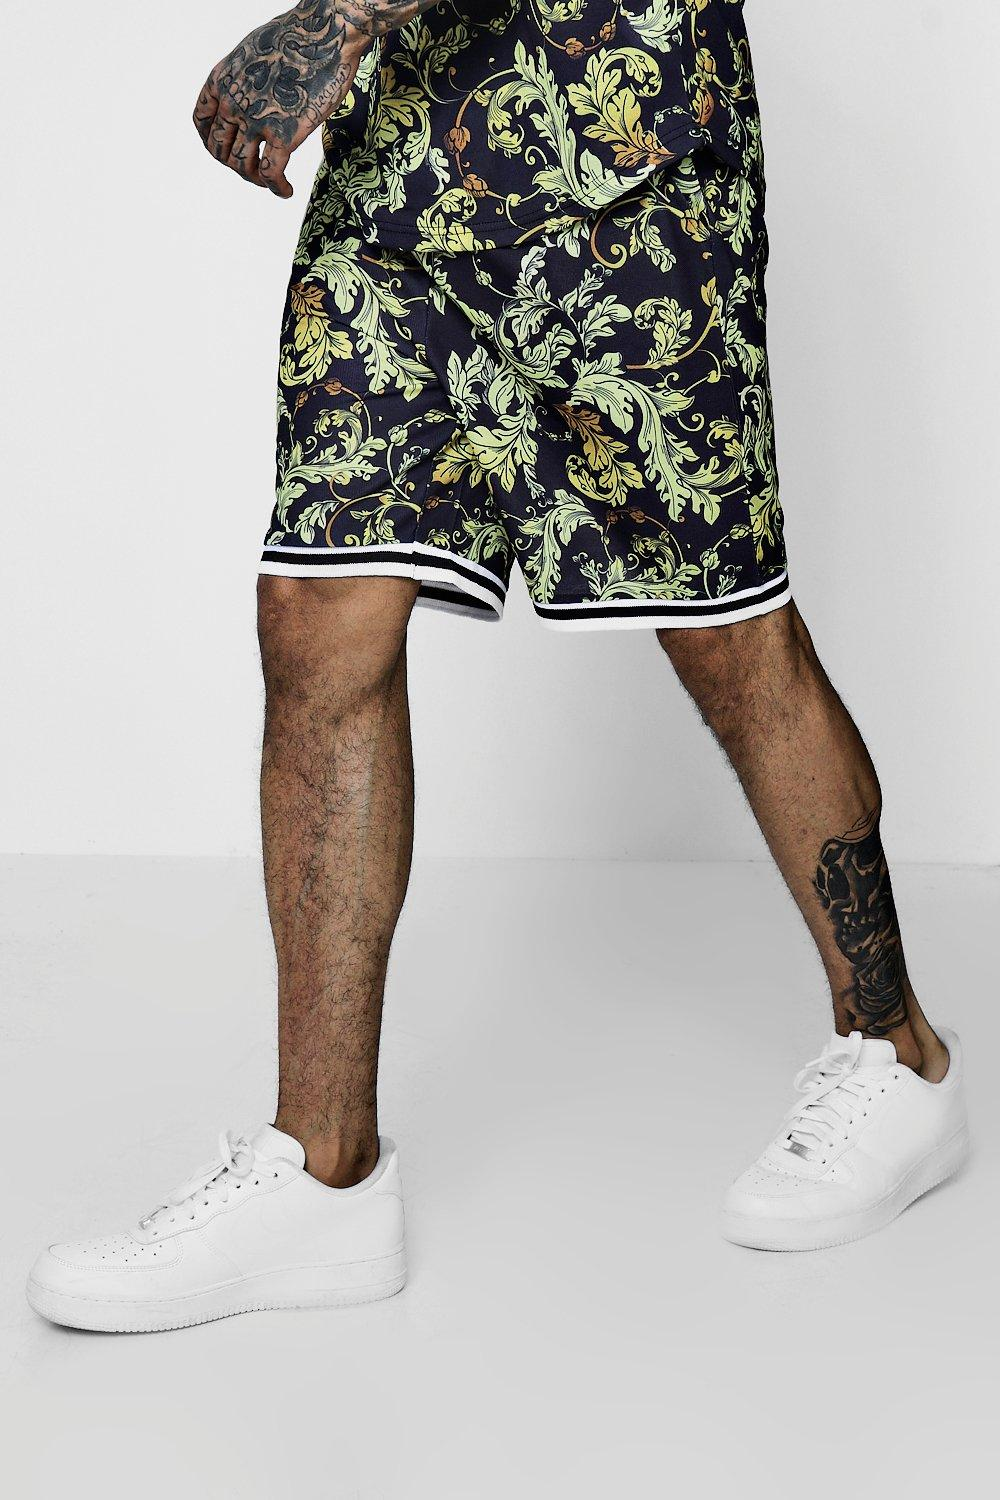 Baroque Print Sports Rib Basketball Shorts